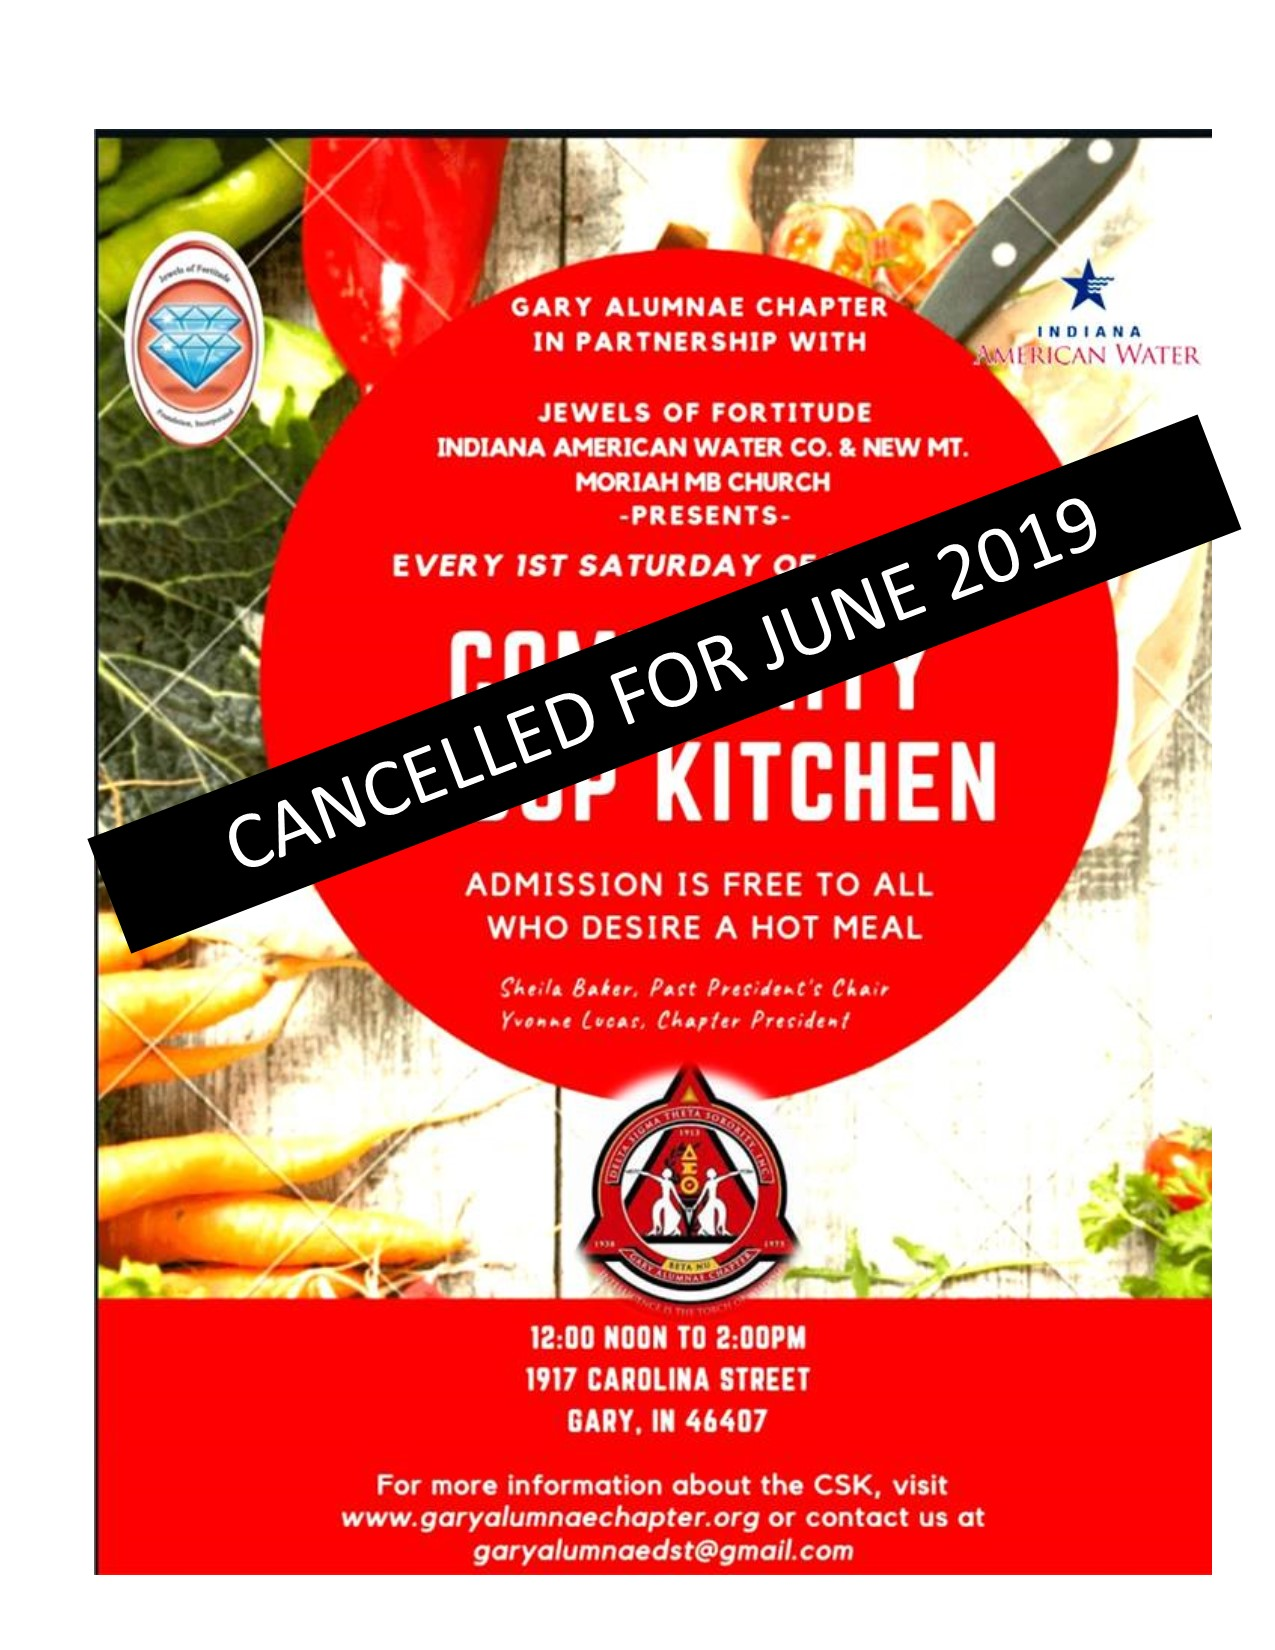 GAC Soup Kitchen Cancelled for June 2019